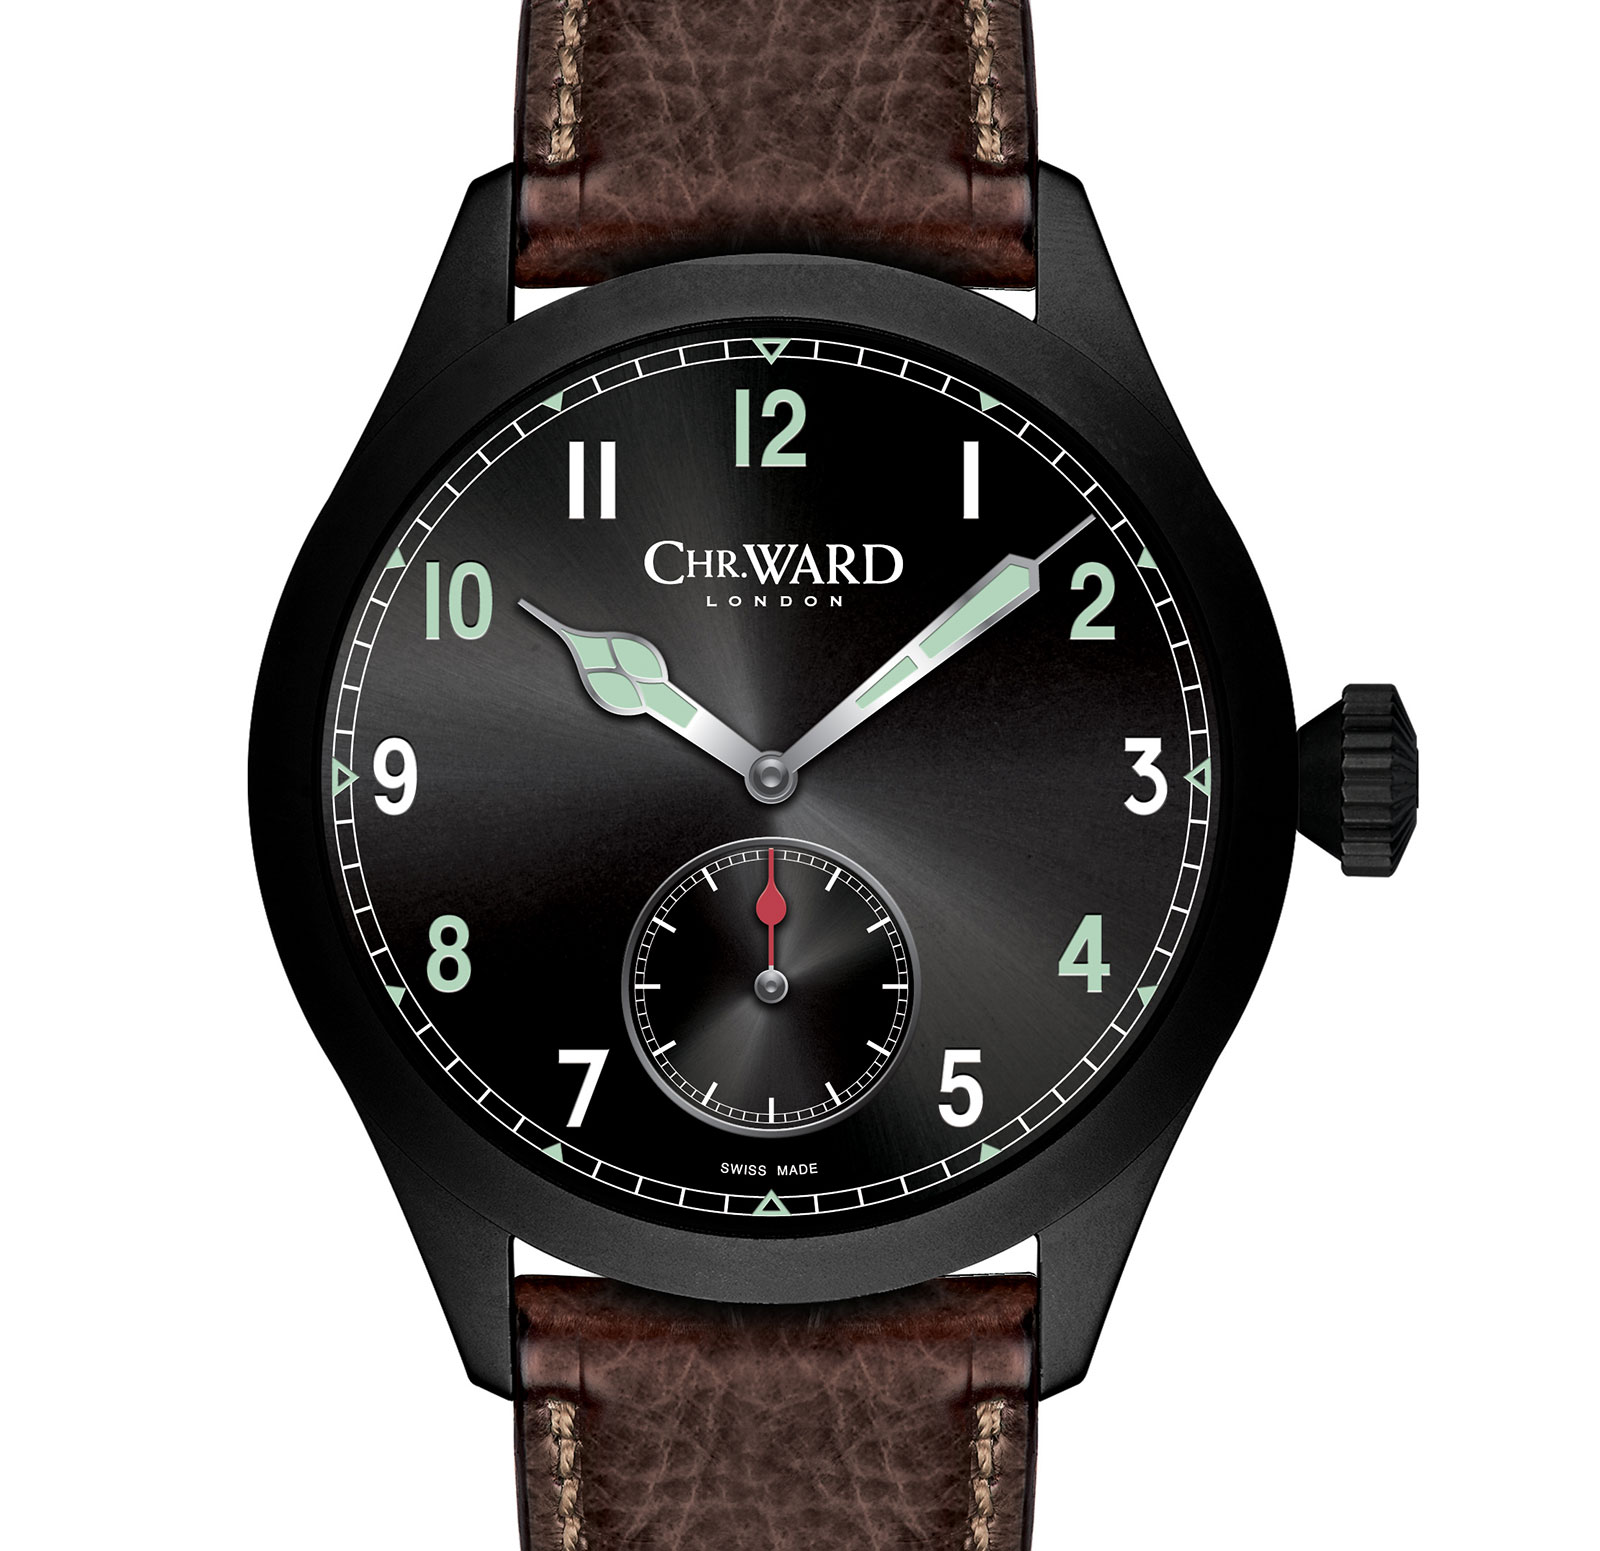 Christopher Ward C8 P7350 Chronometer 3